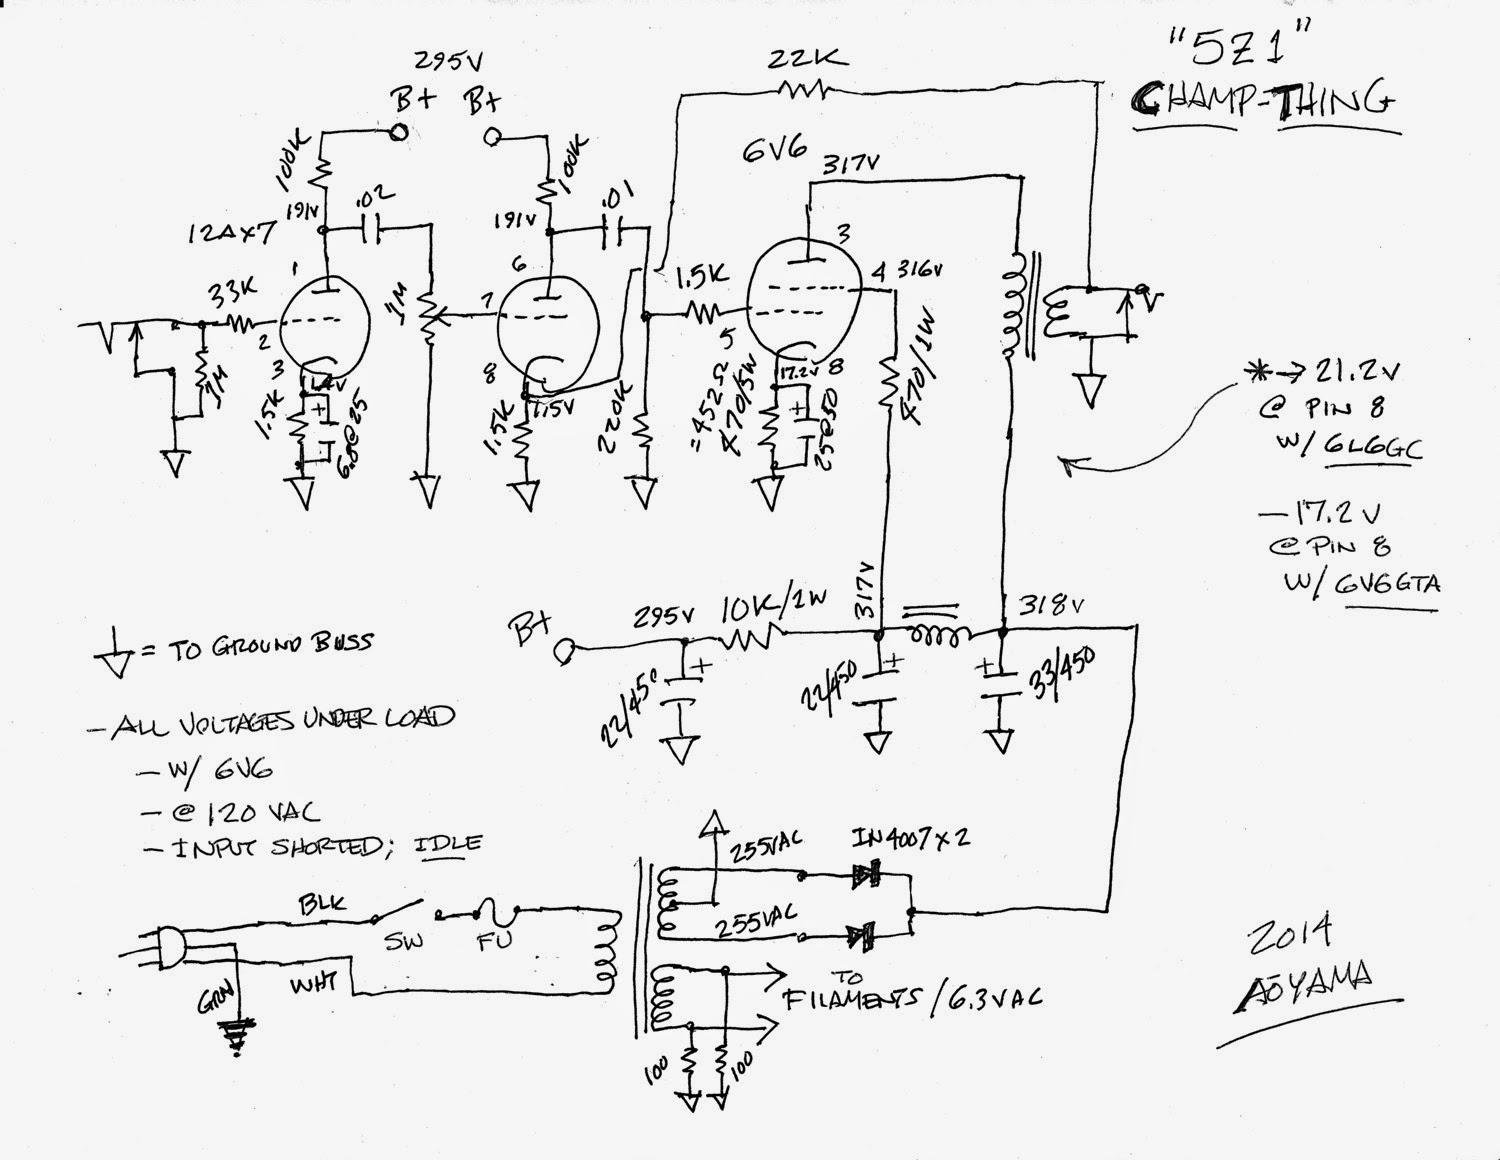 Wiring diagram humor wiring diagrams origami night lamp the 99 cent champ amp part 1 home made guitar amp ccuart